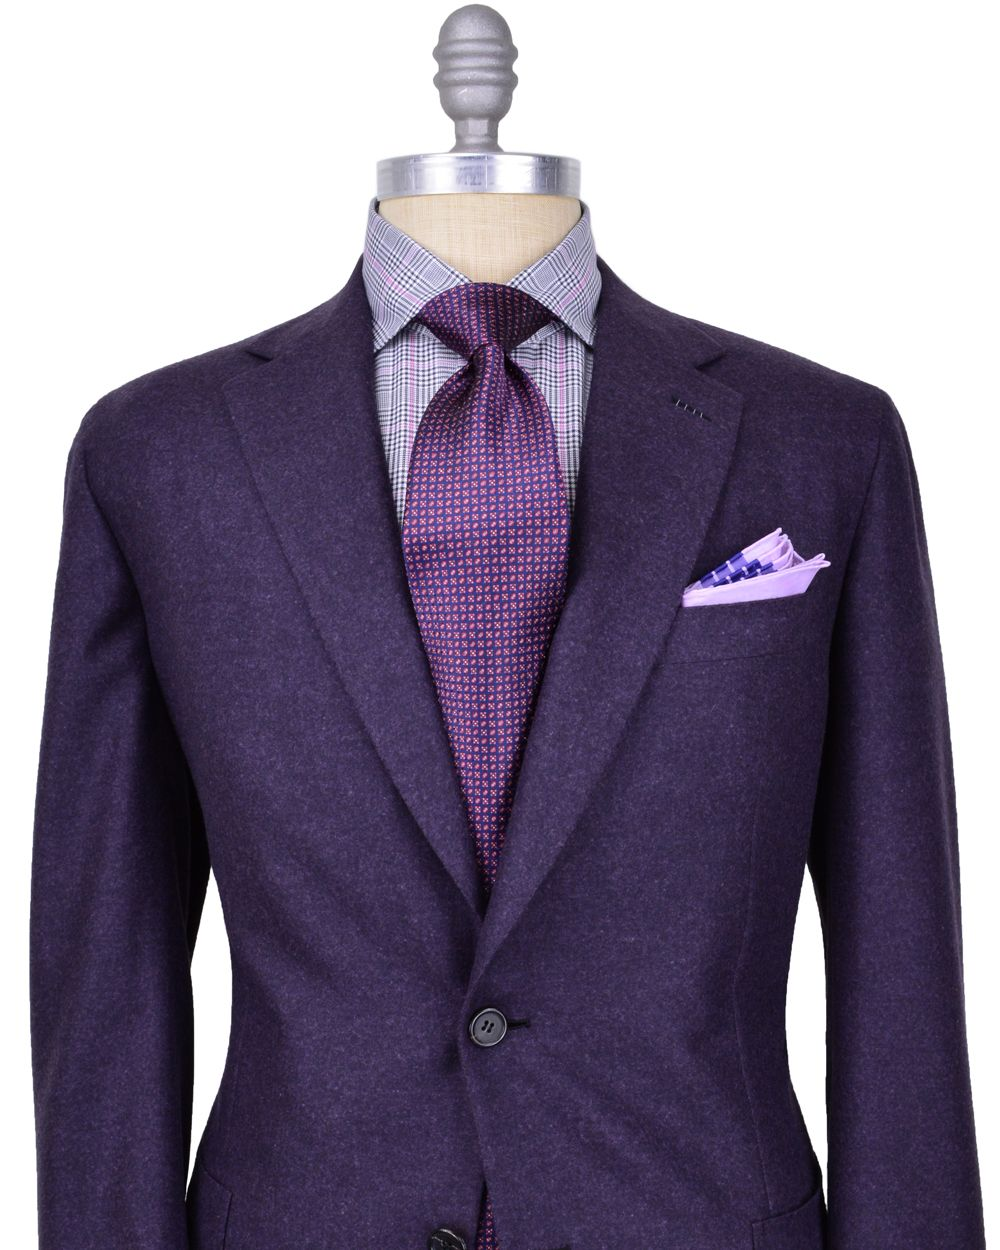 Brioni purple wedding suit | Suits | Pinterest | Blazers, Online ...